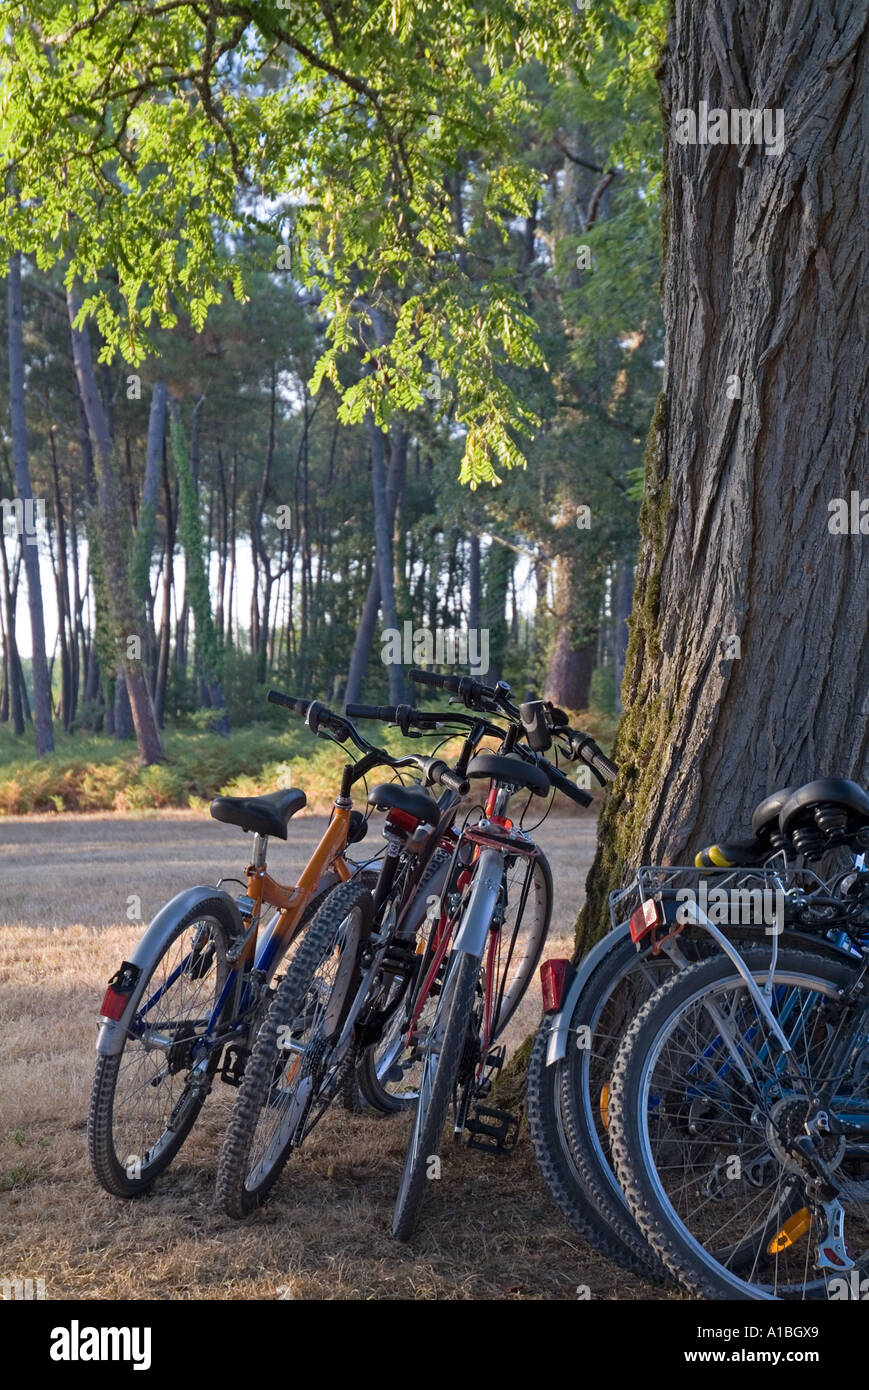 Parked mountain bikes leaning against a tree trunk. - Stock Image